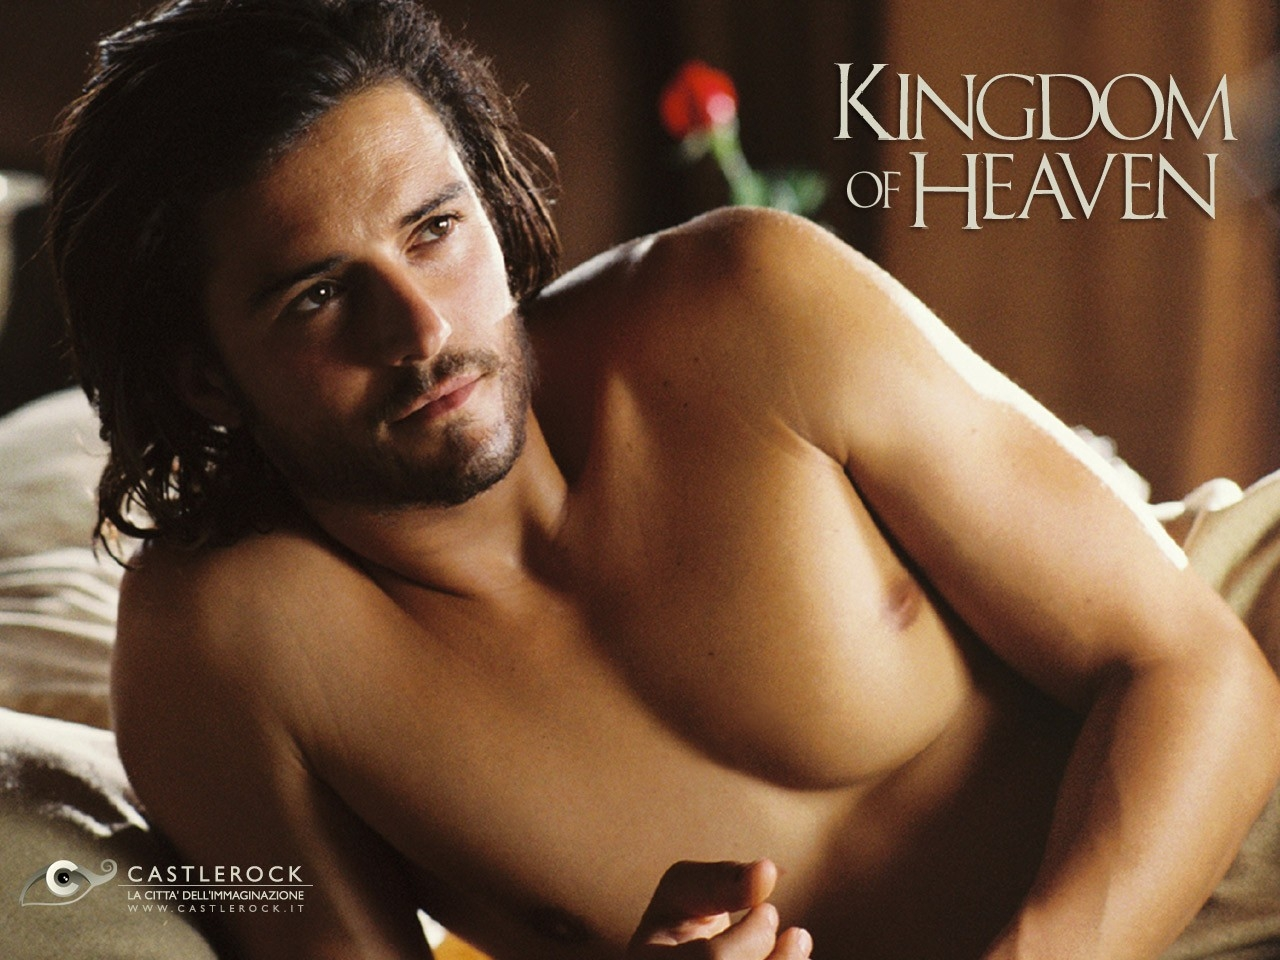 Wallpaper del film Le crociate con Orlando Bloom a torso nudo